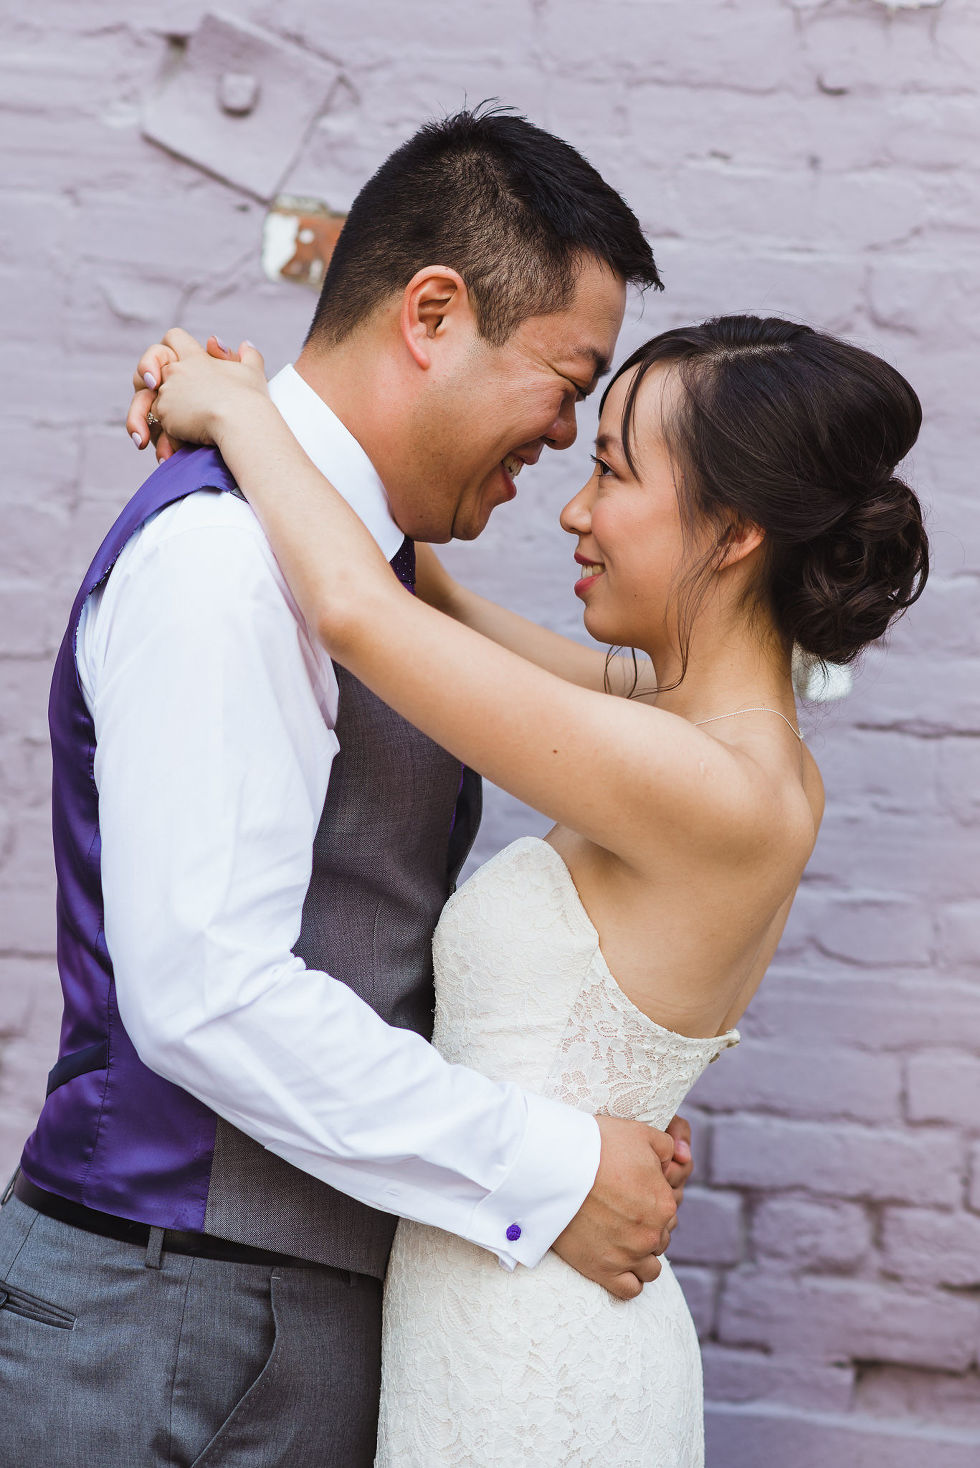 bride and groom in a loving embrace in front of white brick wall on their way to their Parisian inspired wedding at La Maquette in Toronto Ontario